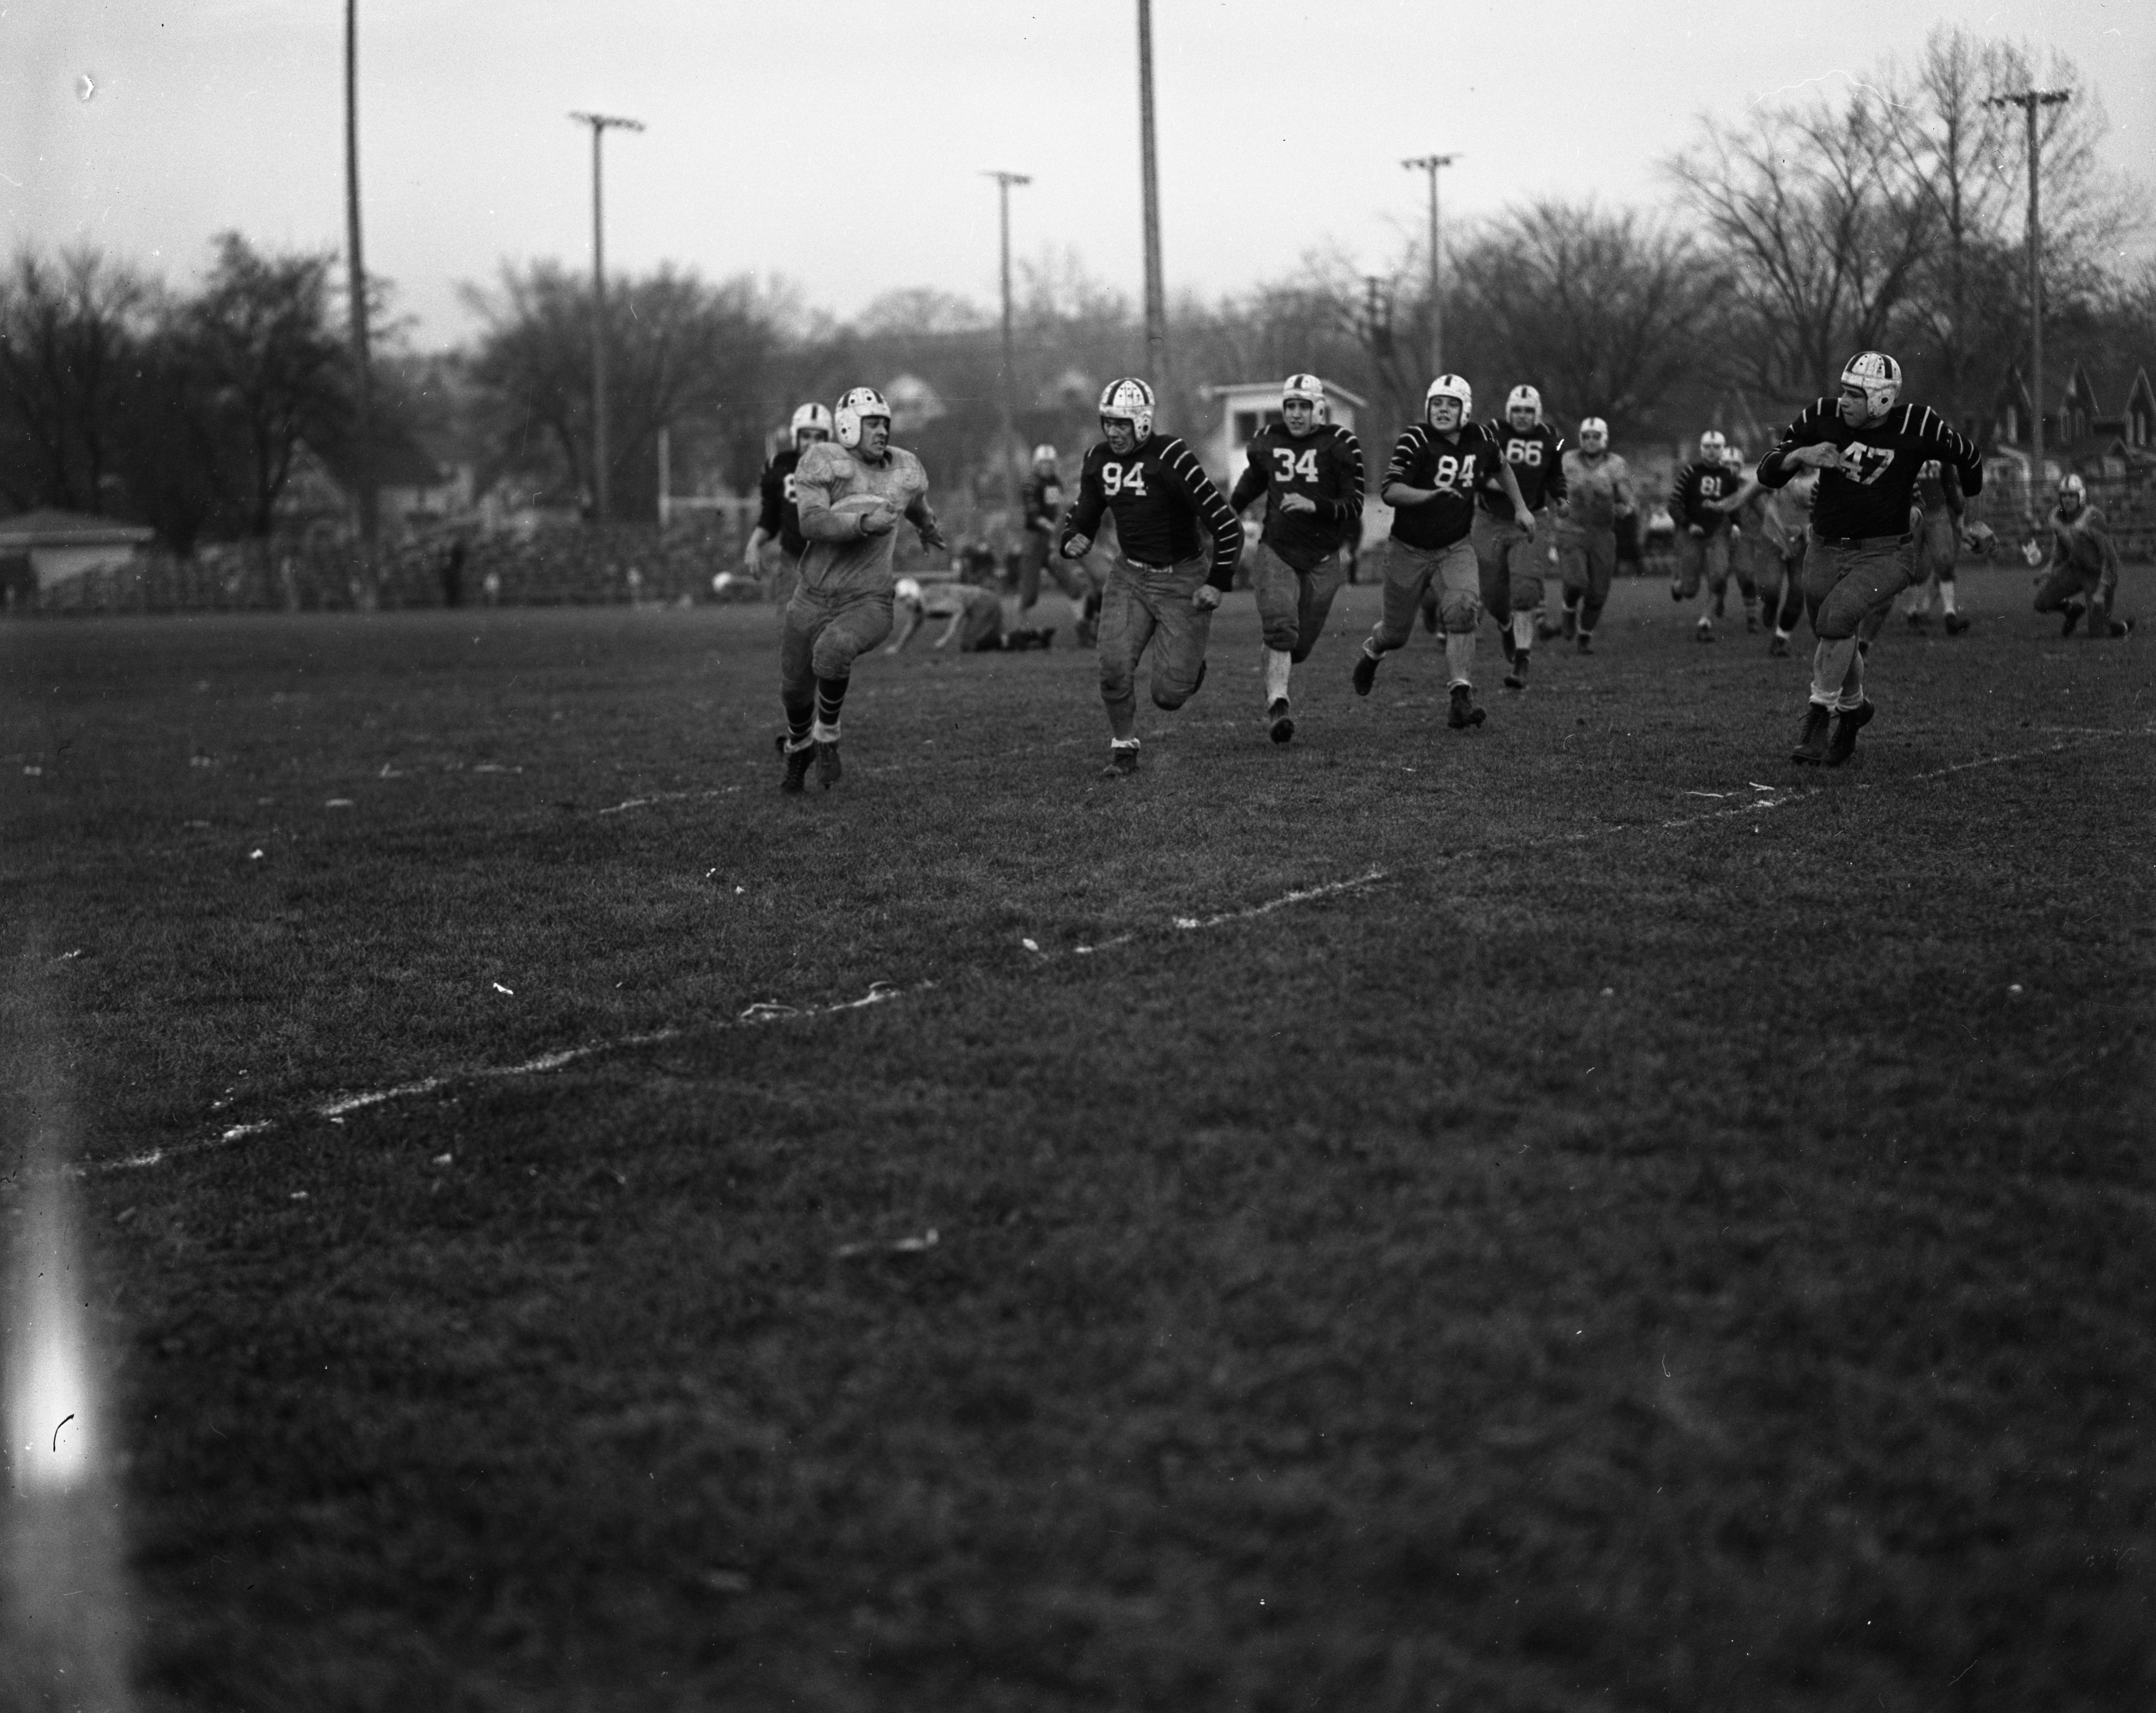 Ann Arbor High School Football Team Divided in the Home Room Game, November 1939 image